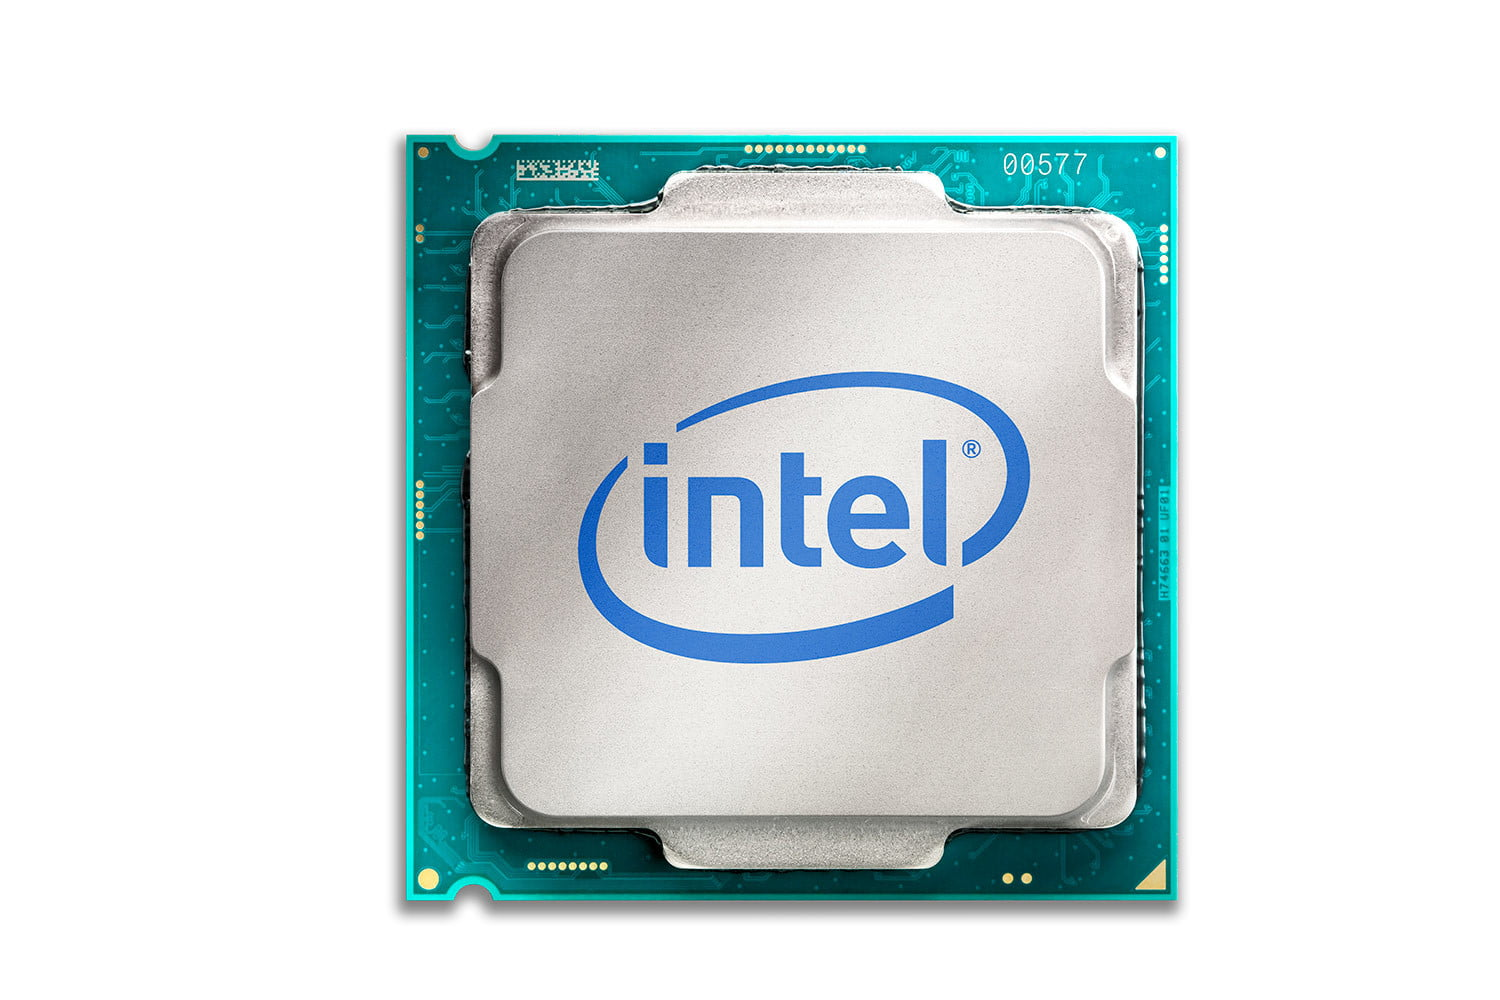 7th generation intel core ces 2017 kby lake s front 08 whitebkg